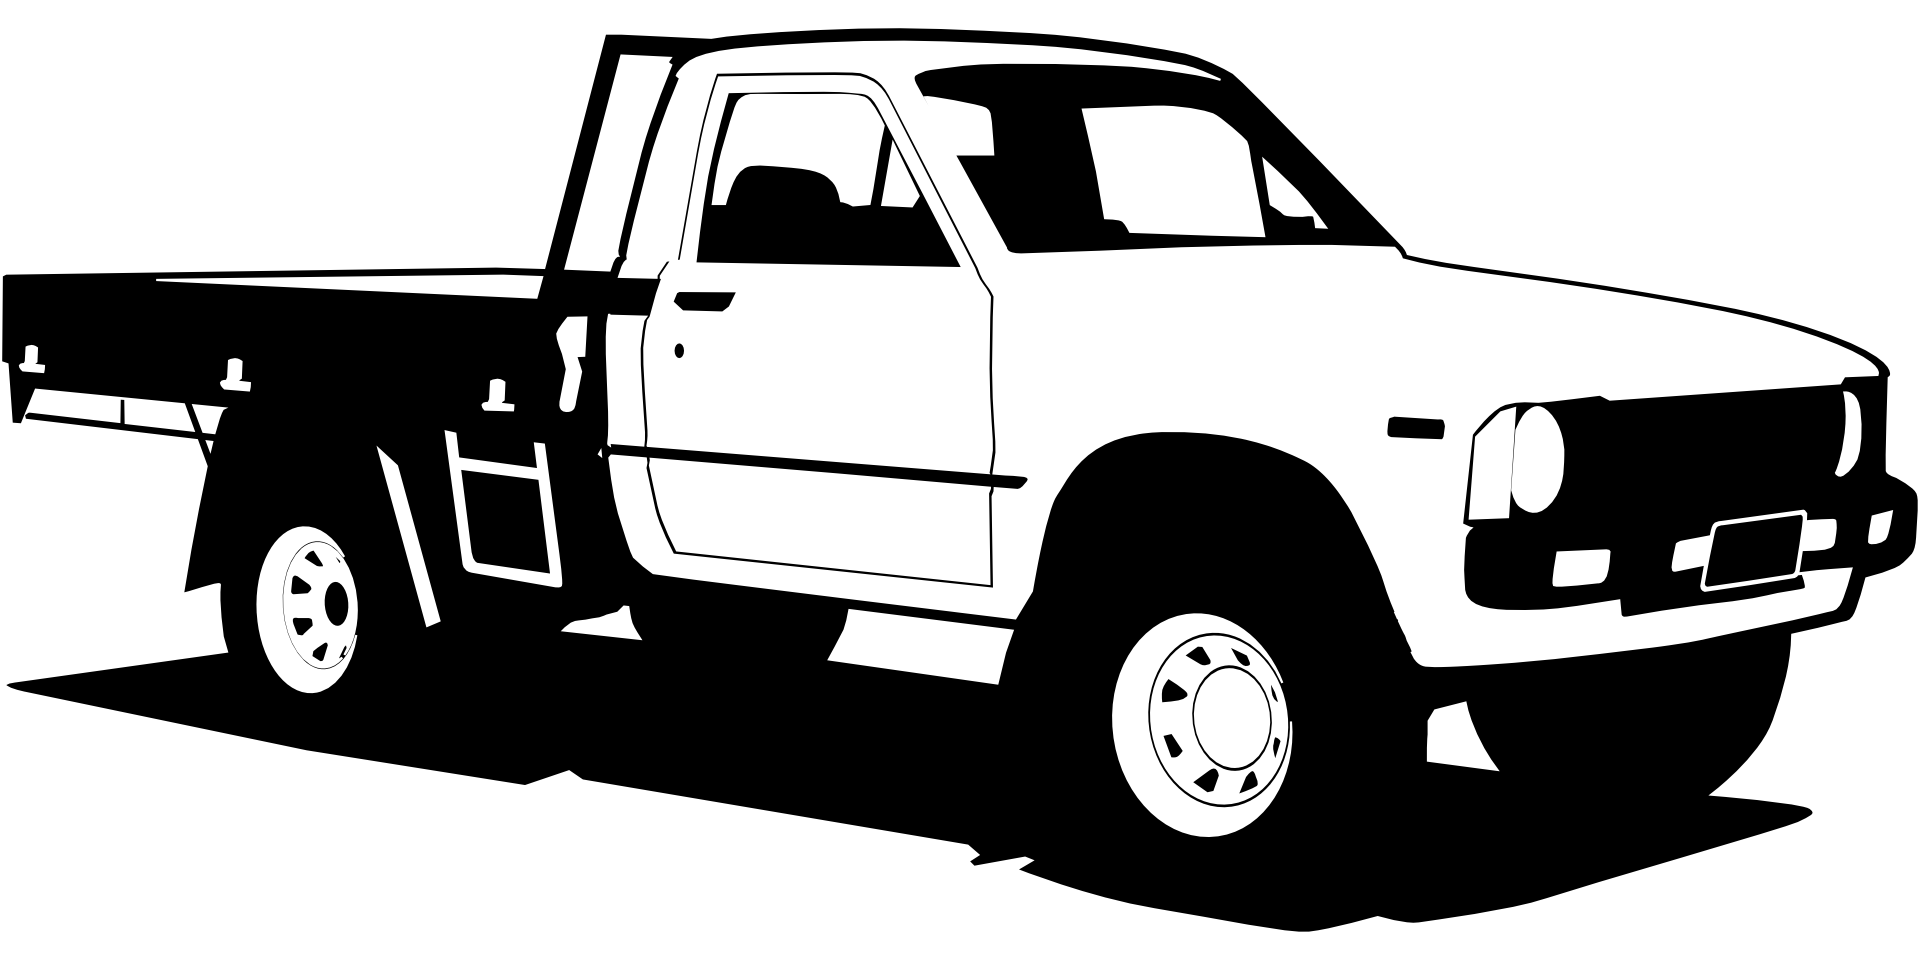 Black and white pickup truck clipart free image.